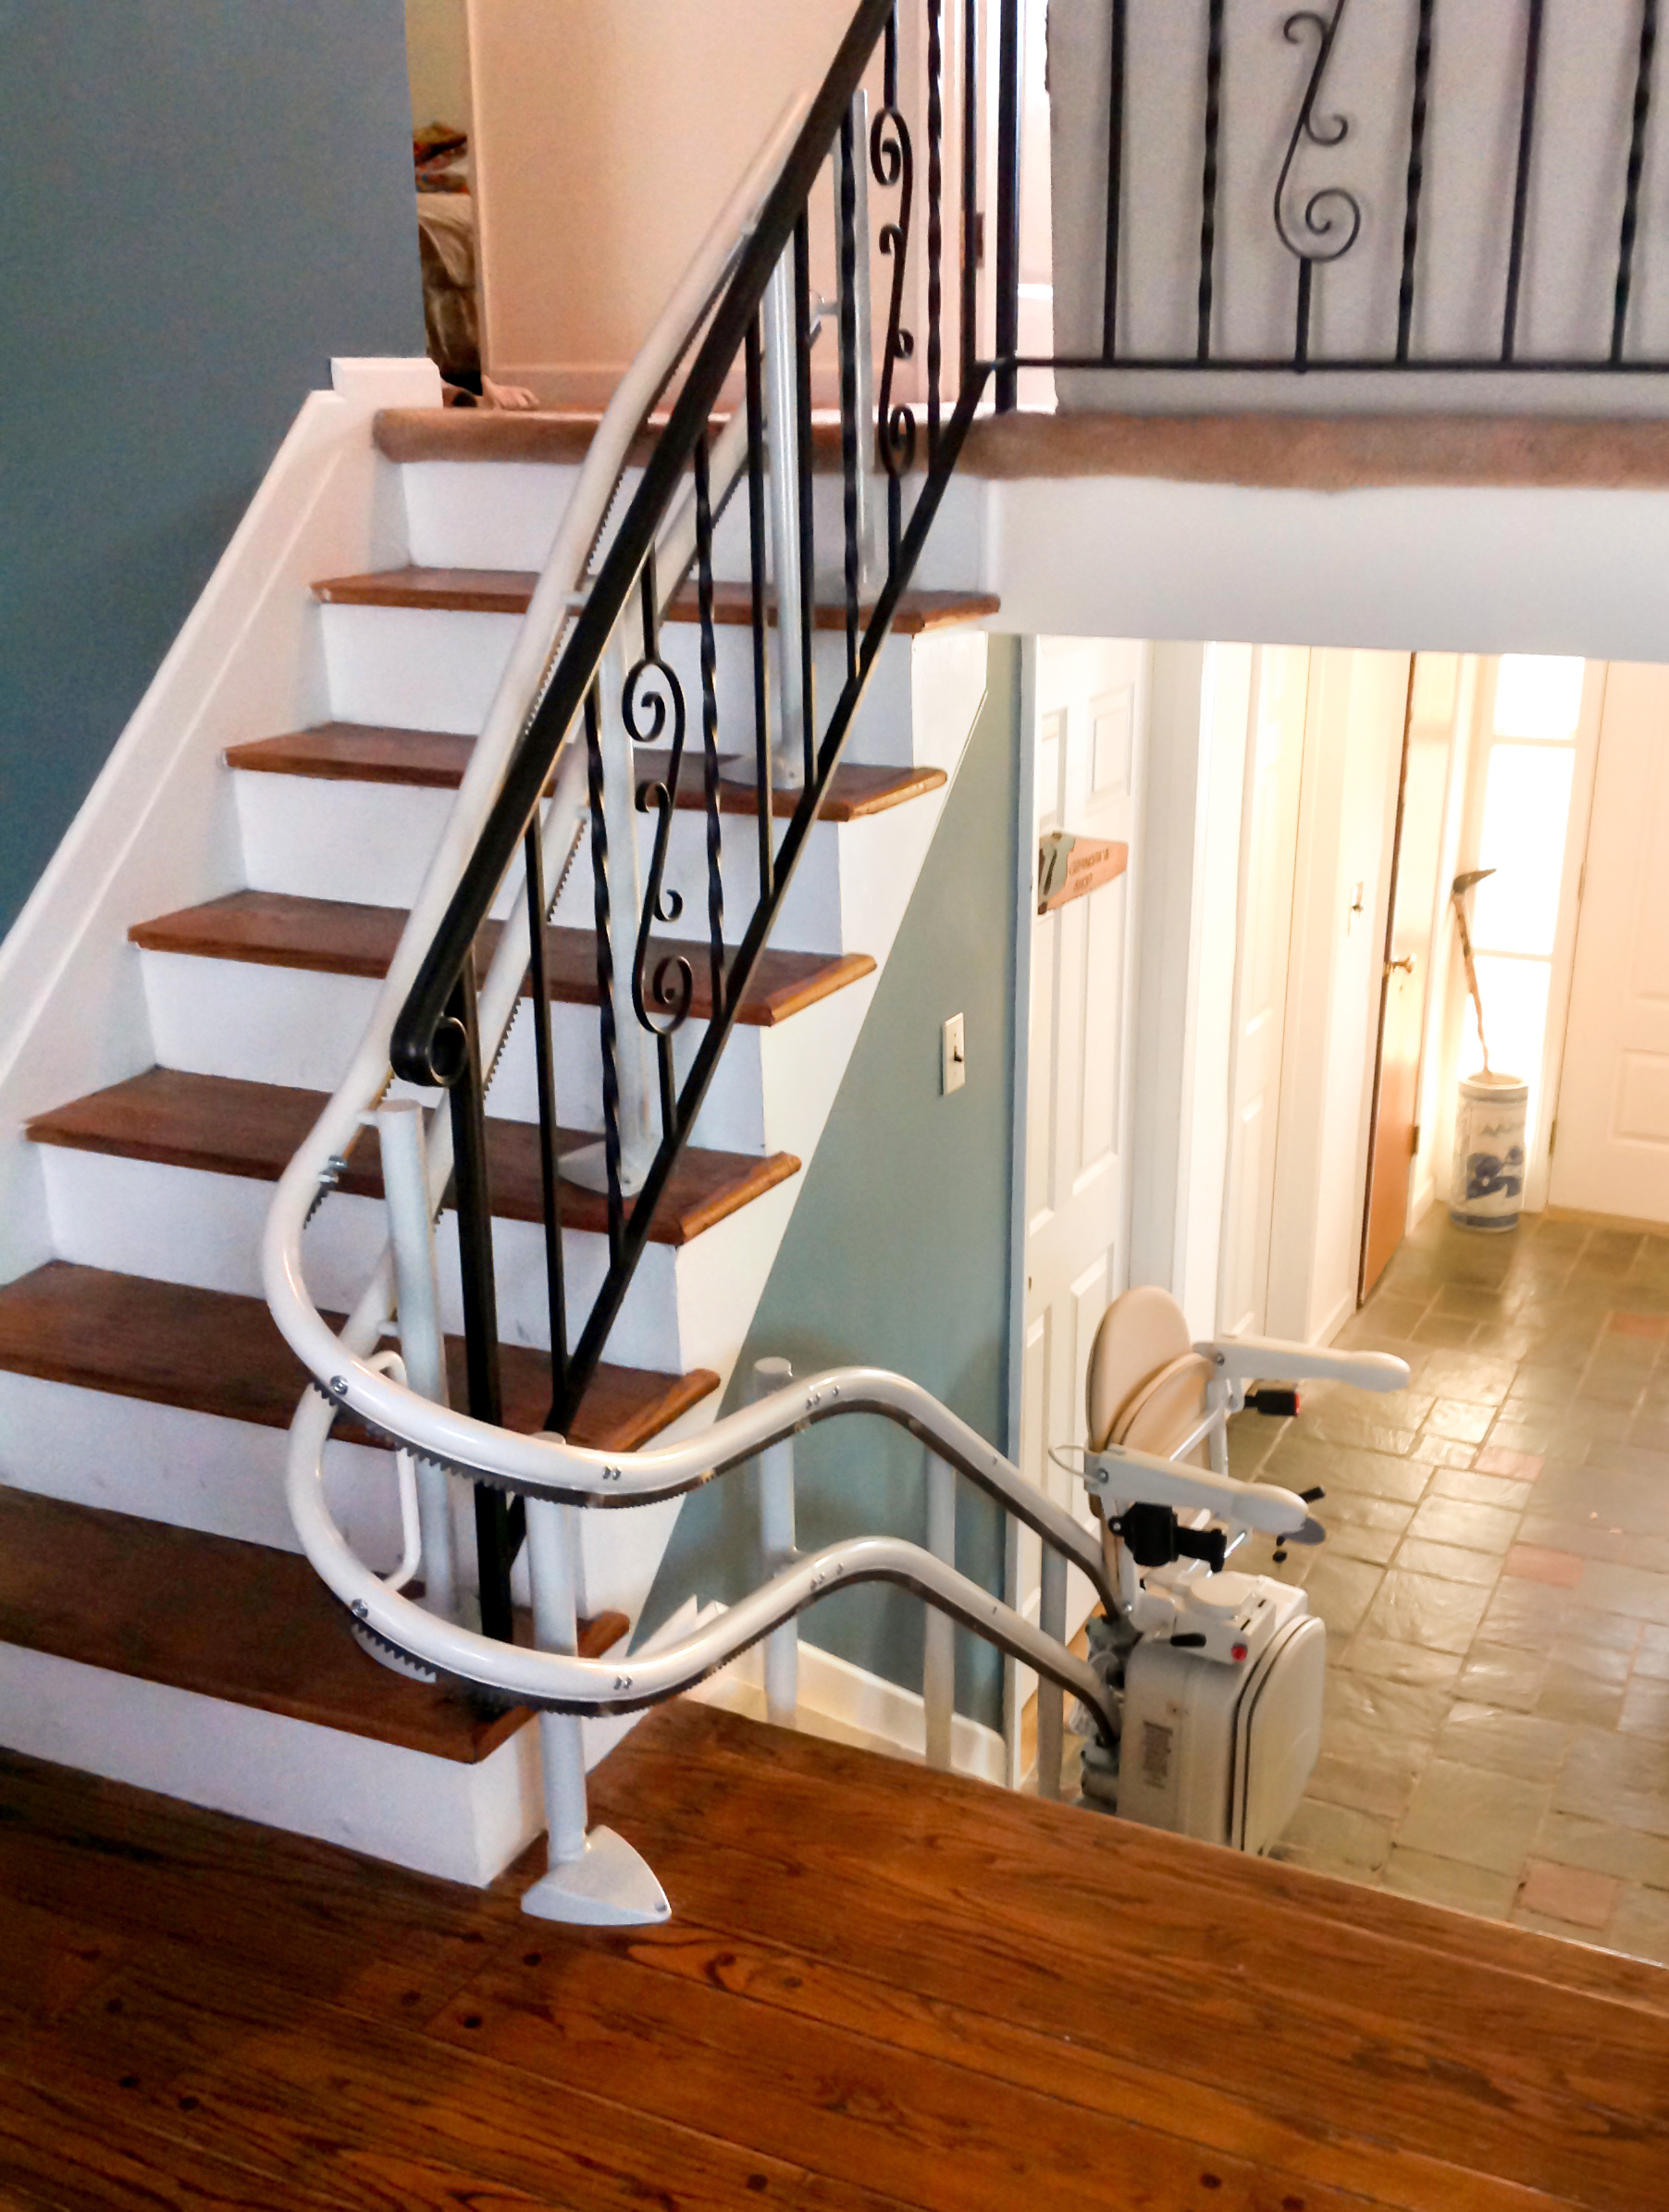 Stair Chair Lifts Curved Rail Stair Lifts Stairlift For Curved Stairs